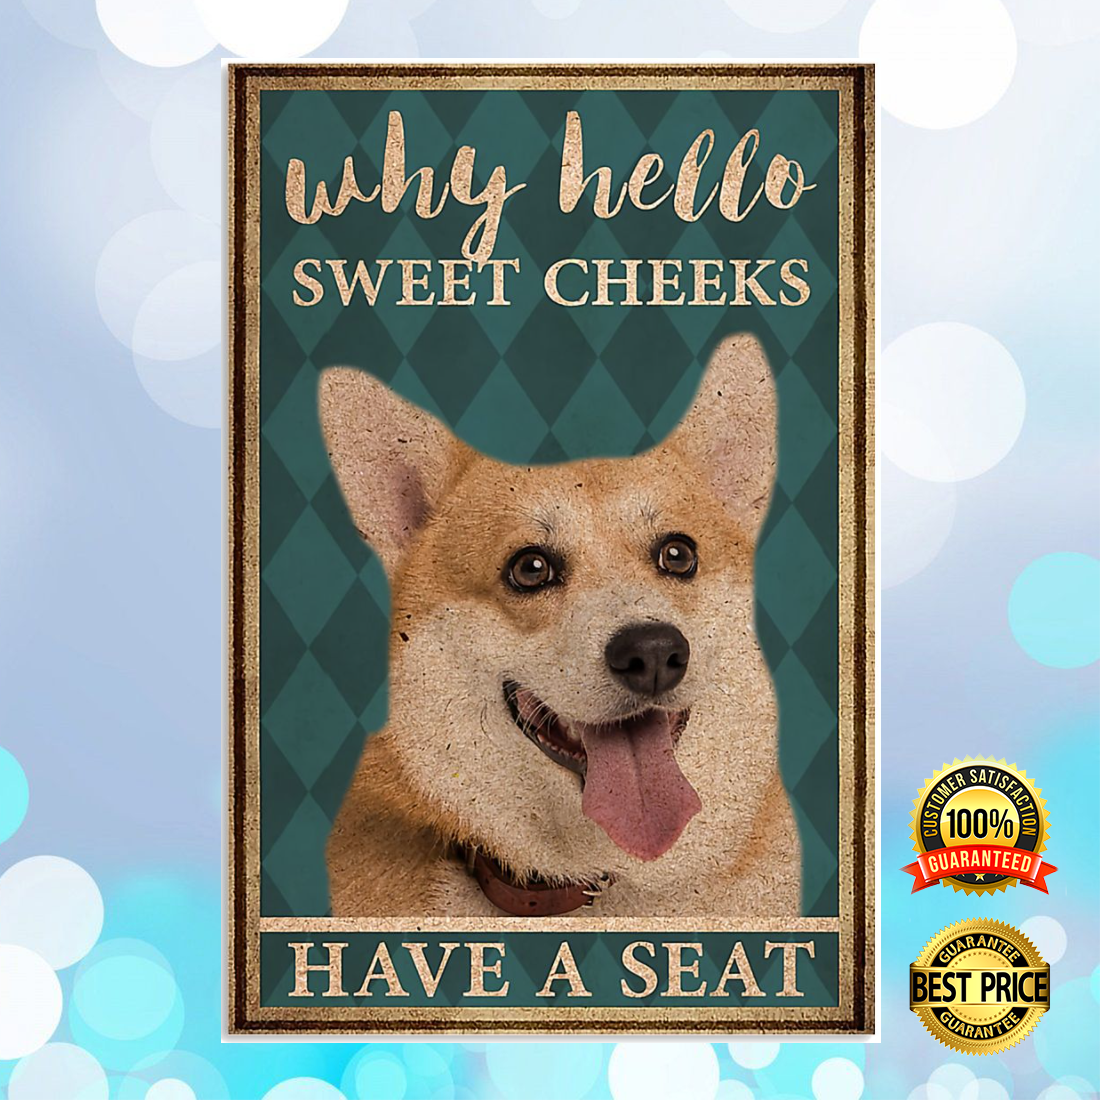 CORGI WHY HELLO SWEET CHEEKS HAVE A SEAT POSTER 7